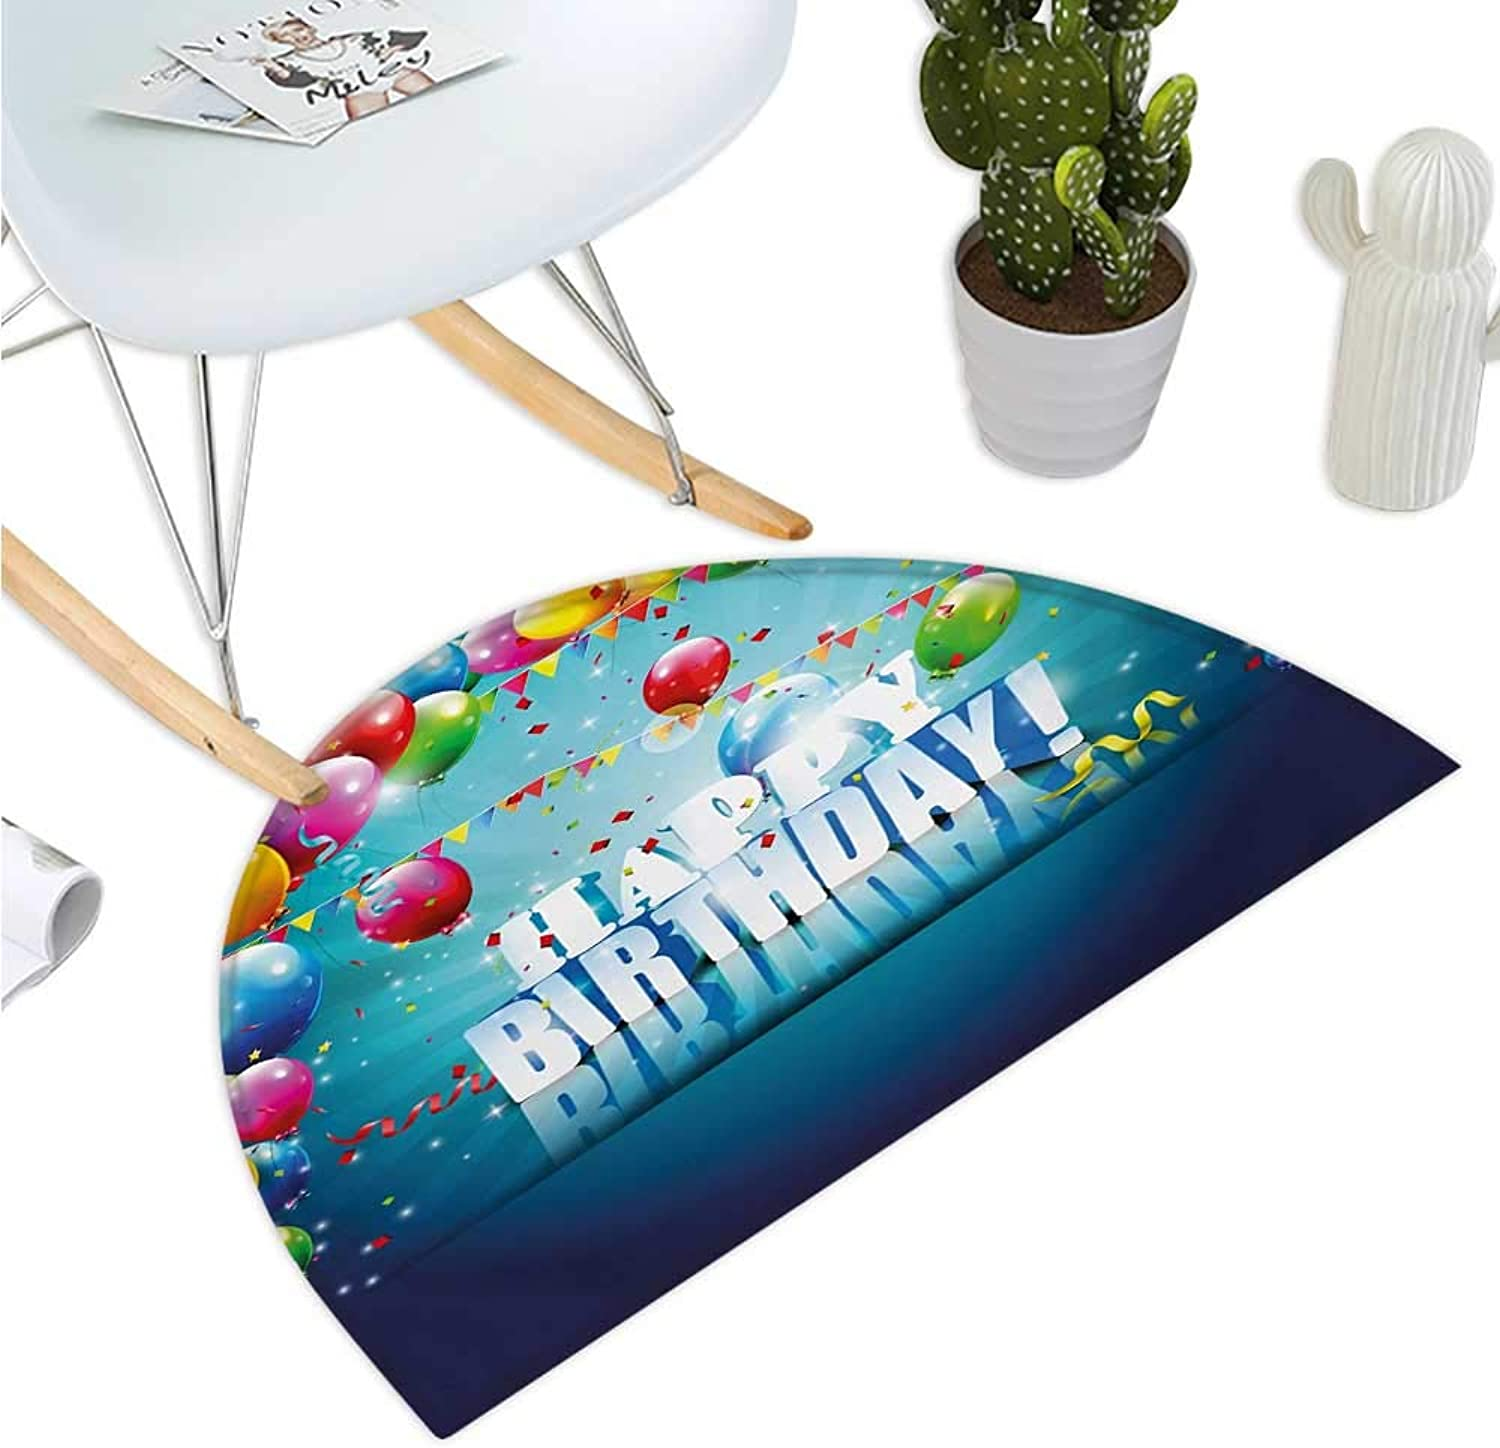 Birthday Semicircular Cushion Realistic Design in 3D Style Text Vibrant colorful Balloons Flags Surprise Party Halfmoon doormats H 39.3  xD 59  Multicolor